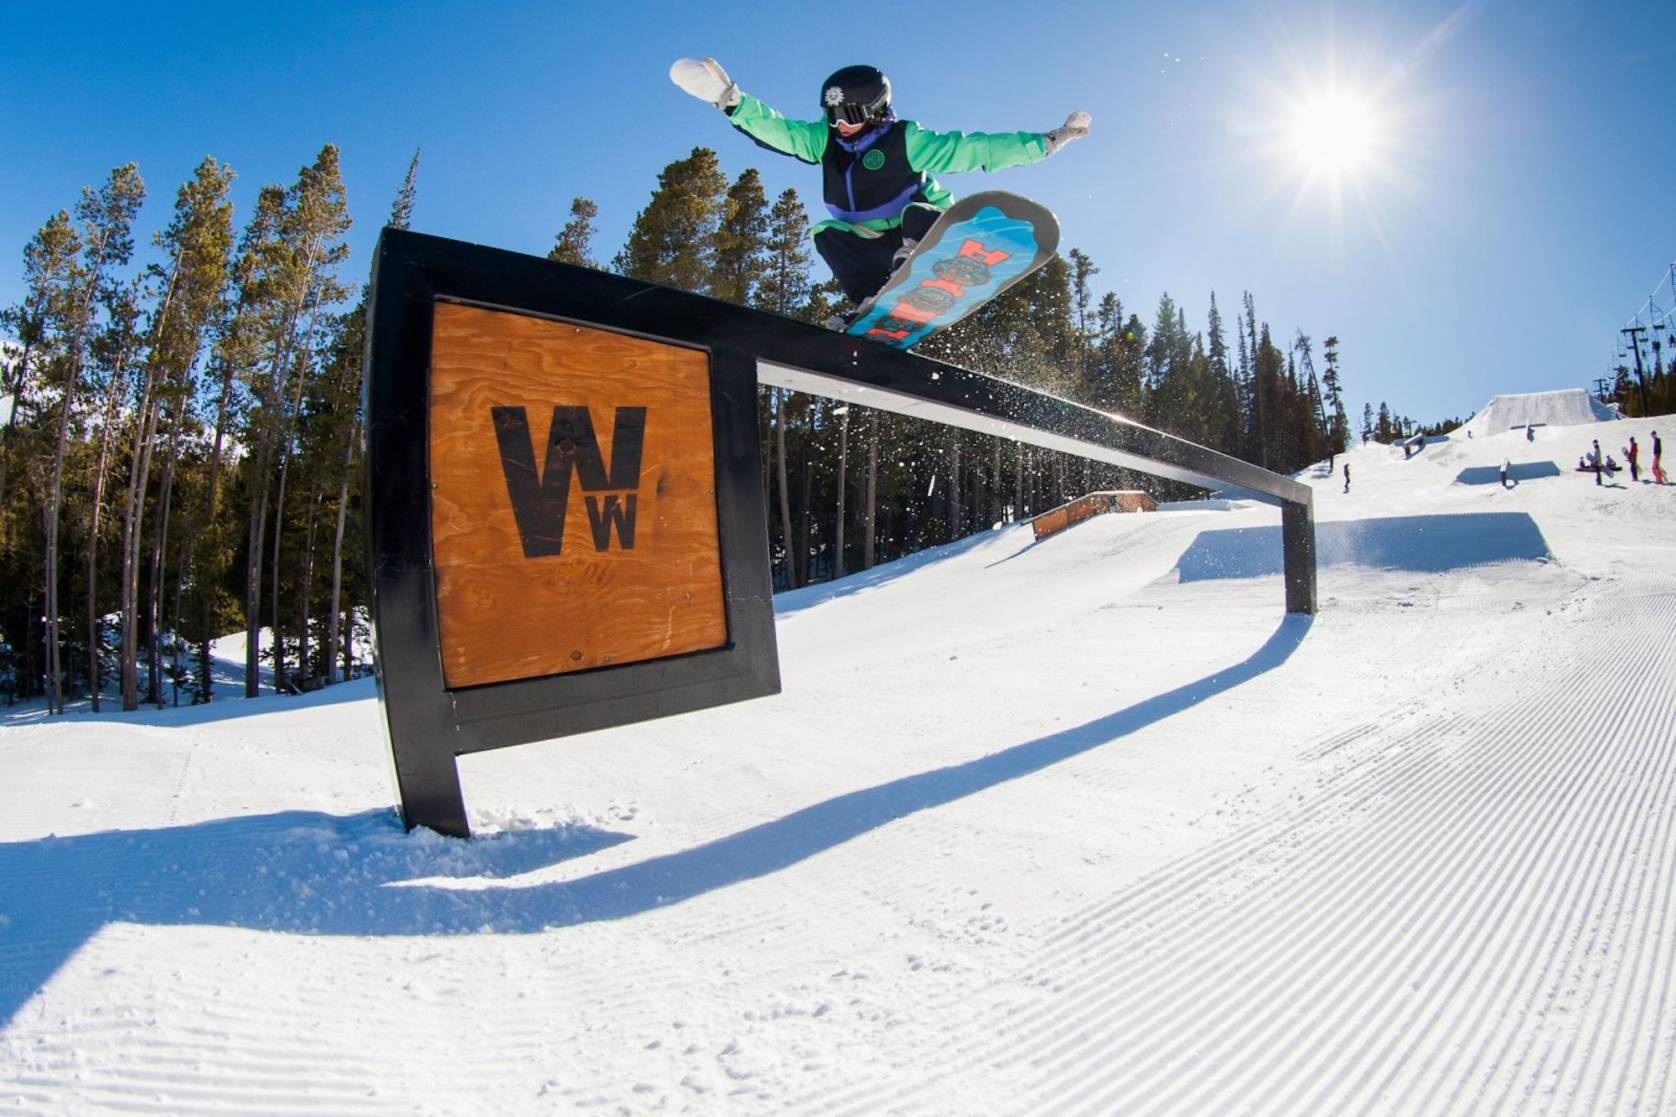 snowboarder riding rail at Eldora Mountain park in Ms. Superpark comp